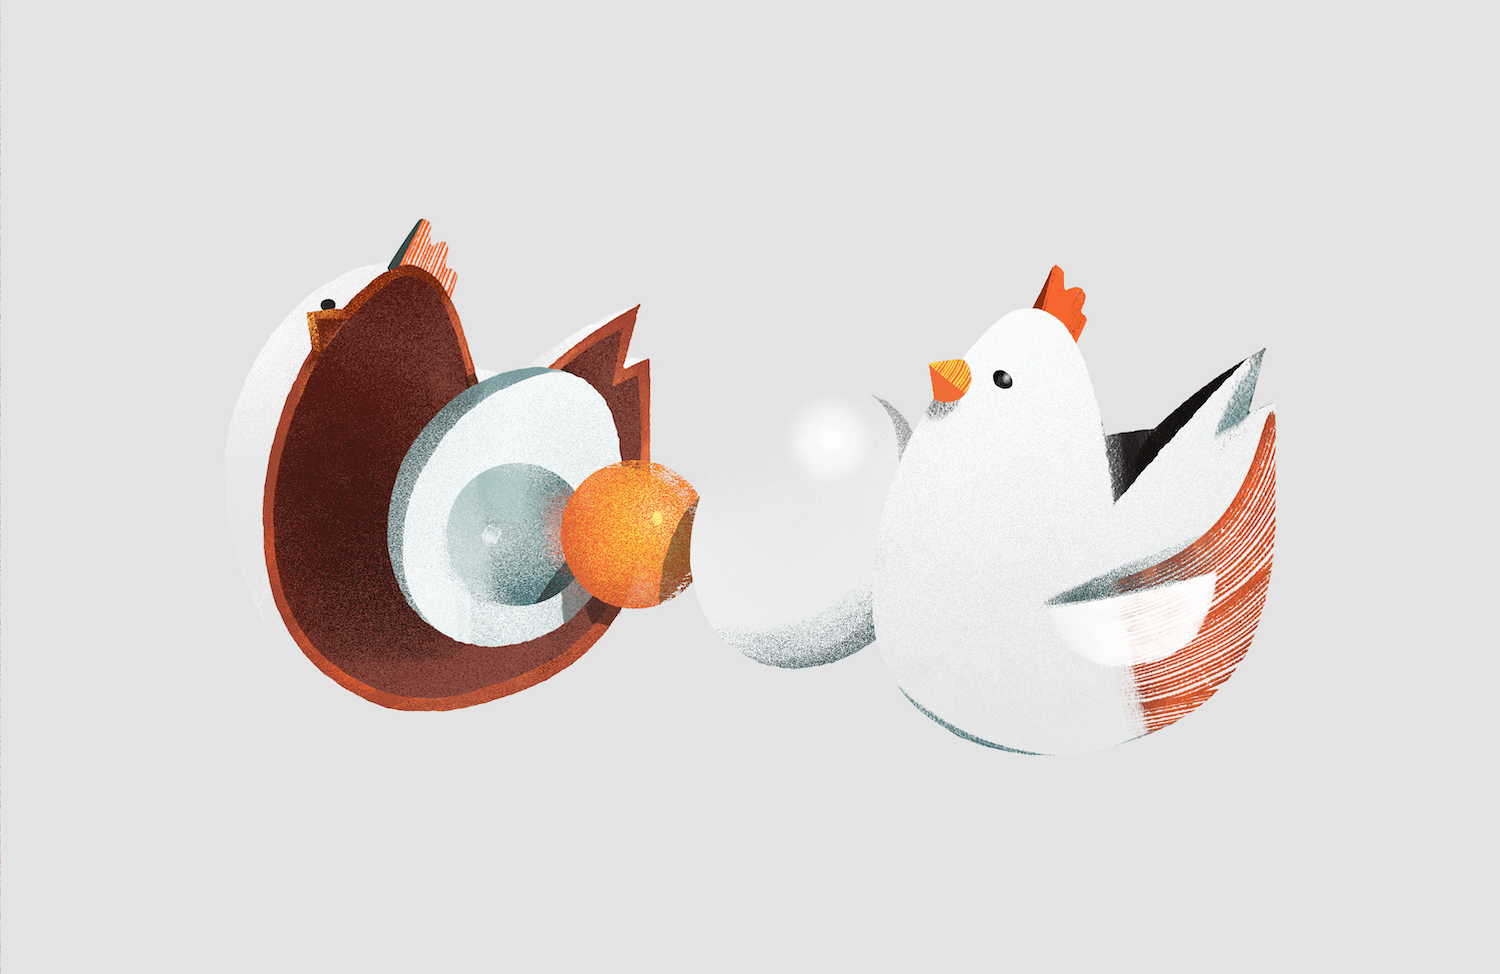 chickenegg_edit_vn_a01_1500px.png